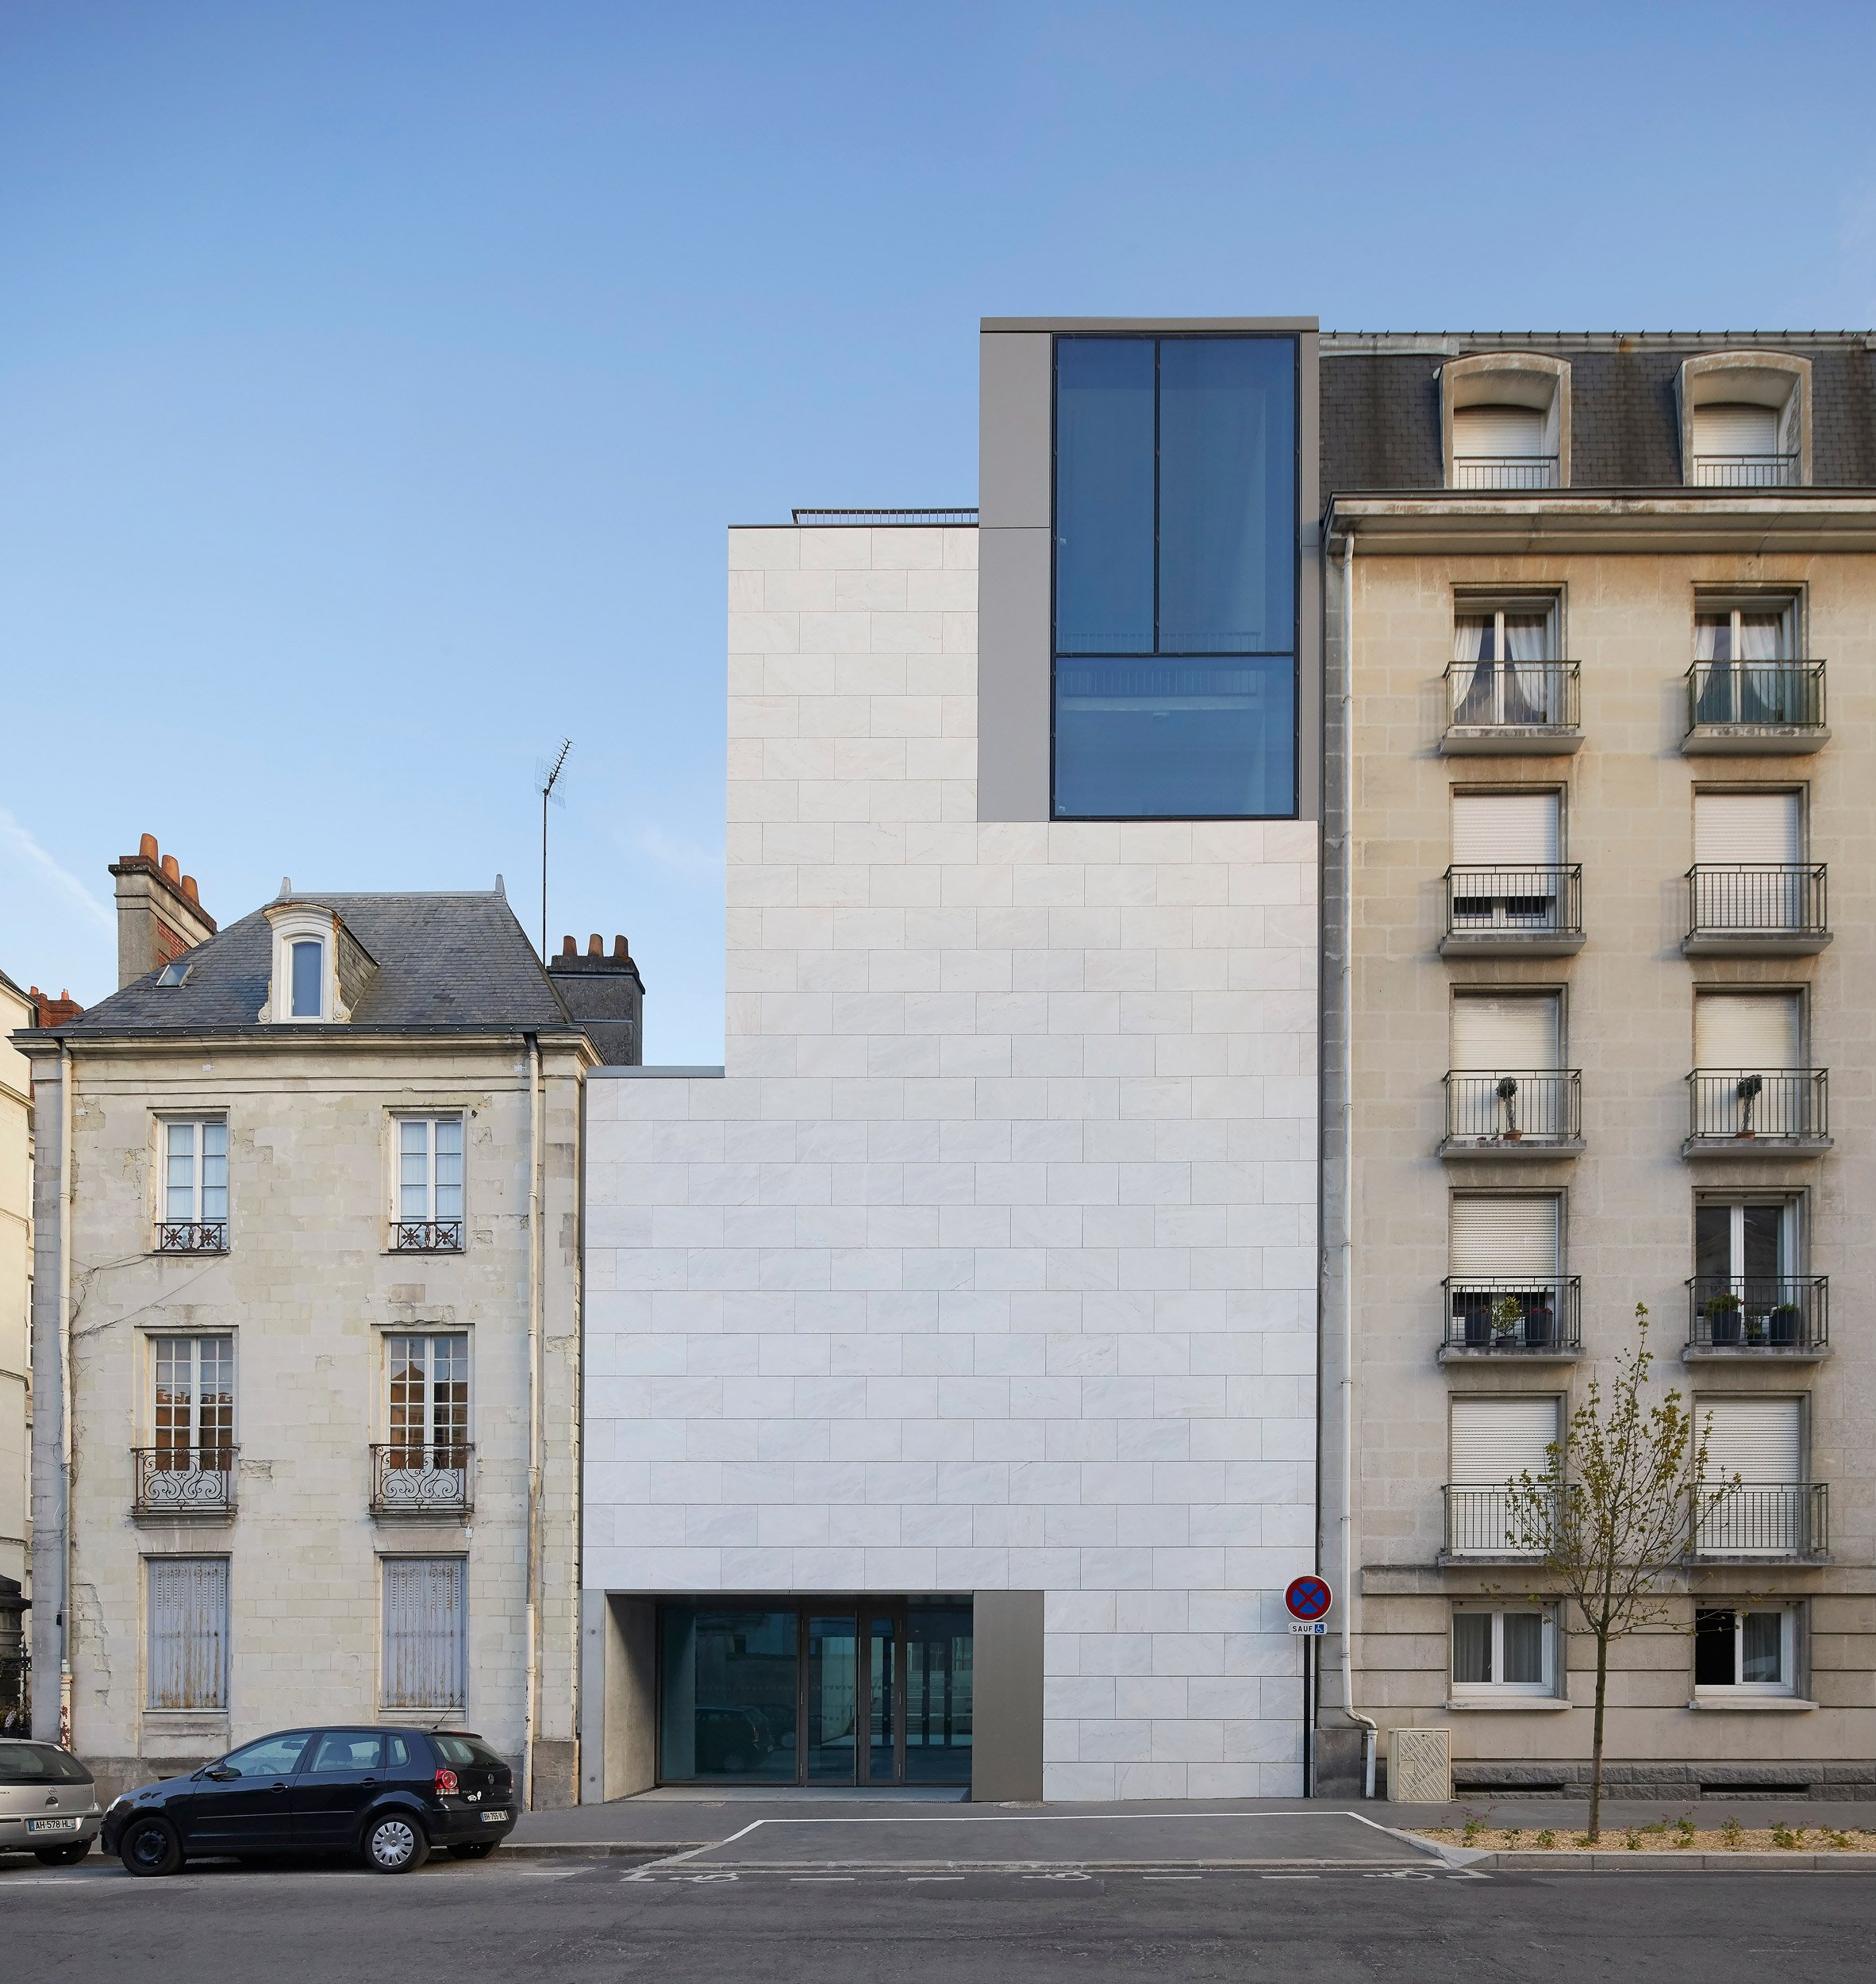 Stanton Williams completes renovation of Beaux-Arts museum in Nantes with stone and marble extension